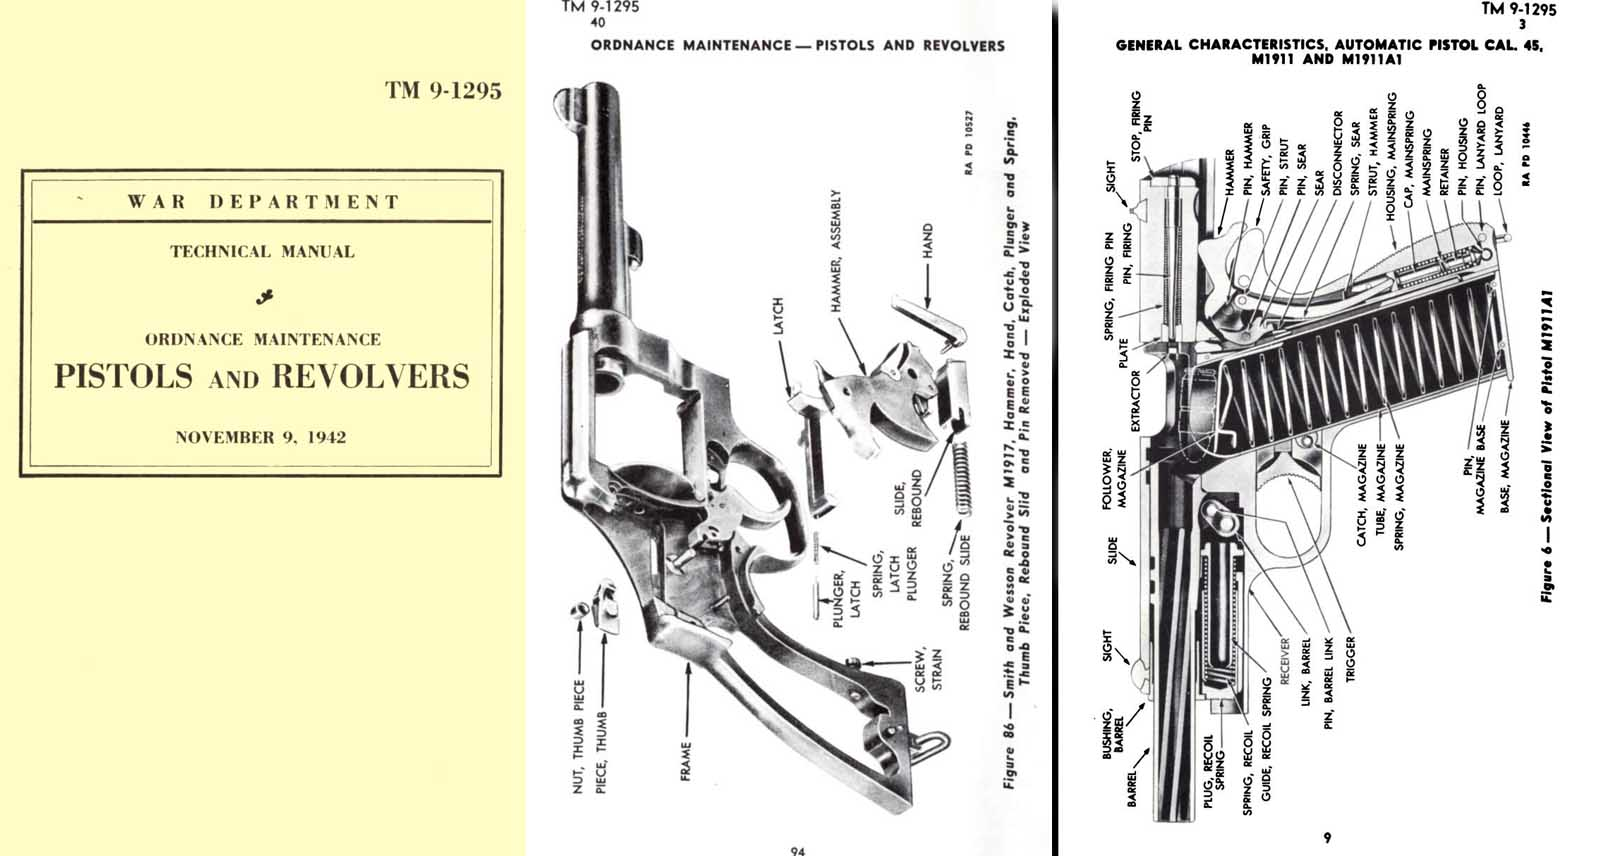 Pistols M1911A1 and Revolvers S&W .45 1942- Manual Ordnance Maint TM 9-1295